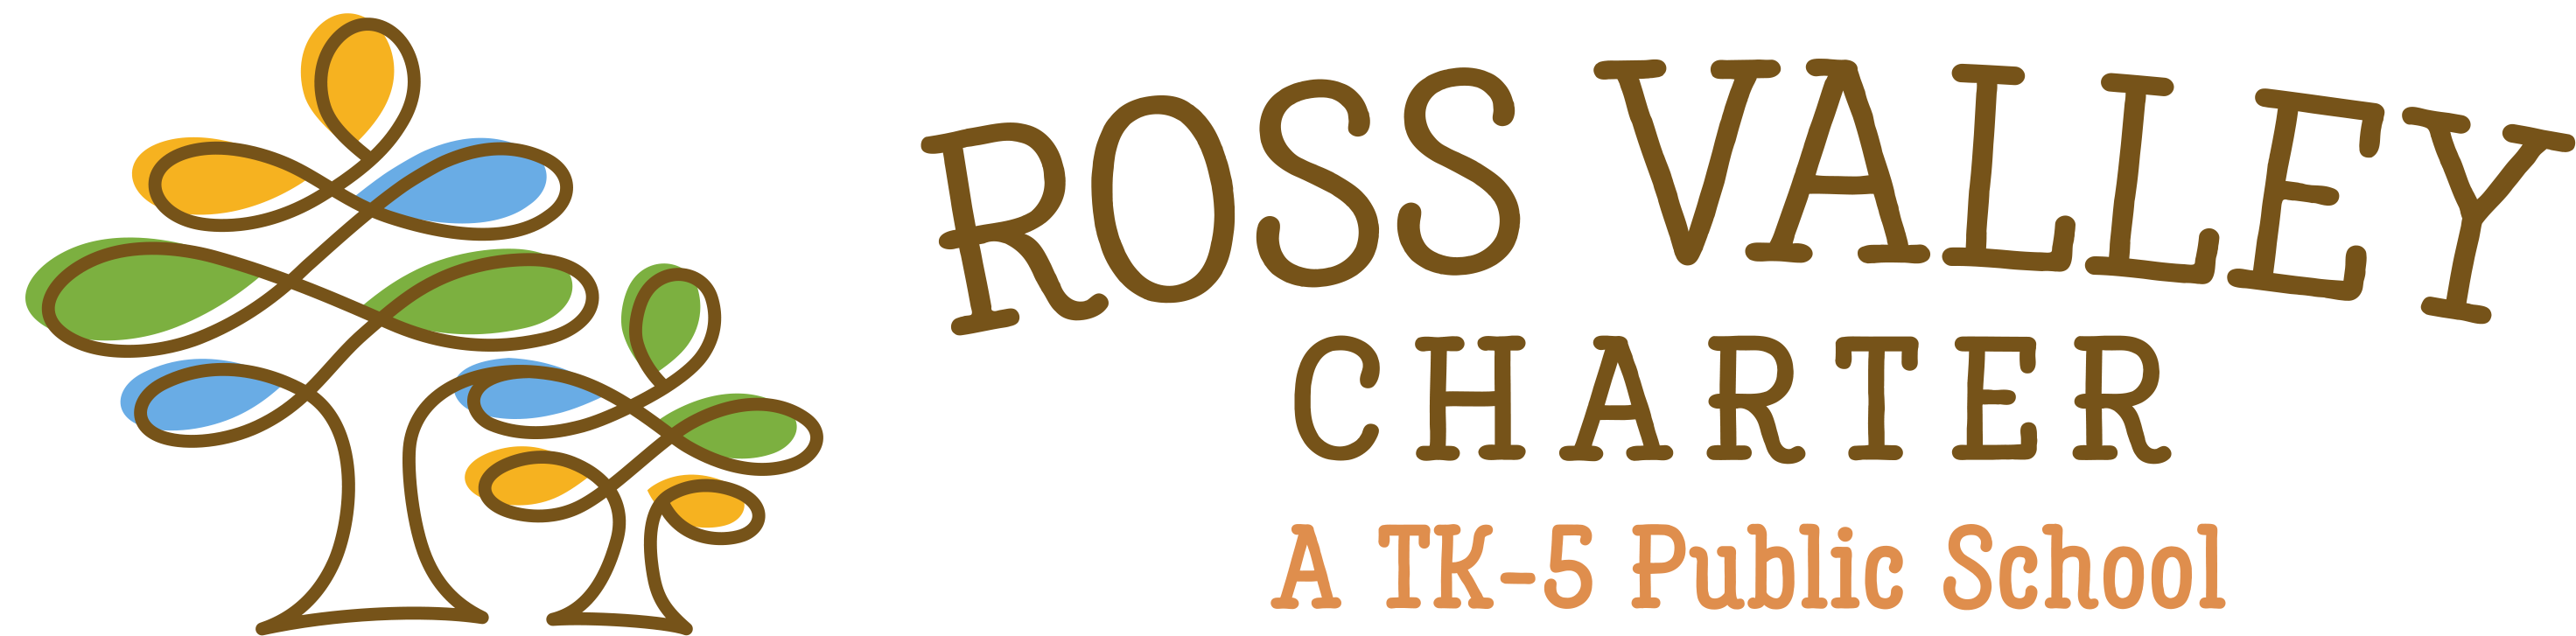 Transportation to Ross Valley Charter - Ross Valley Charter School